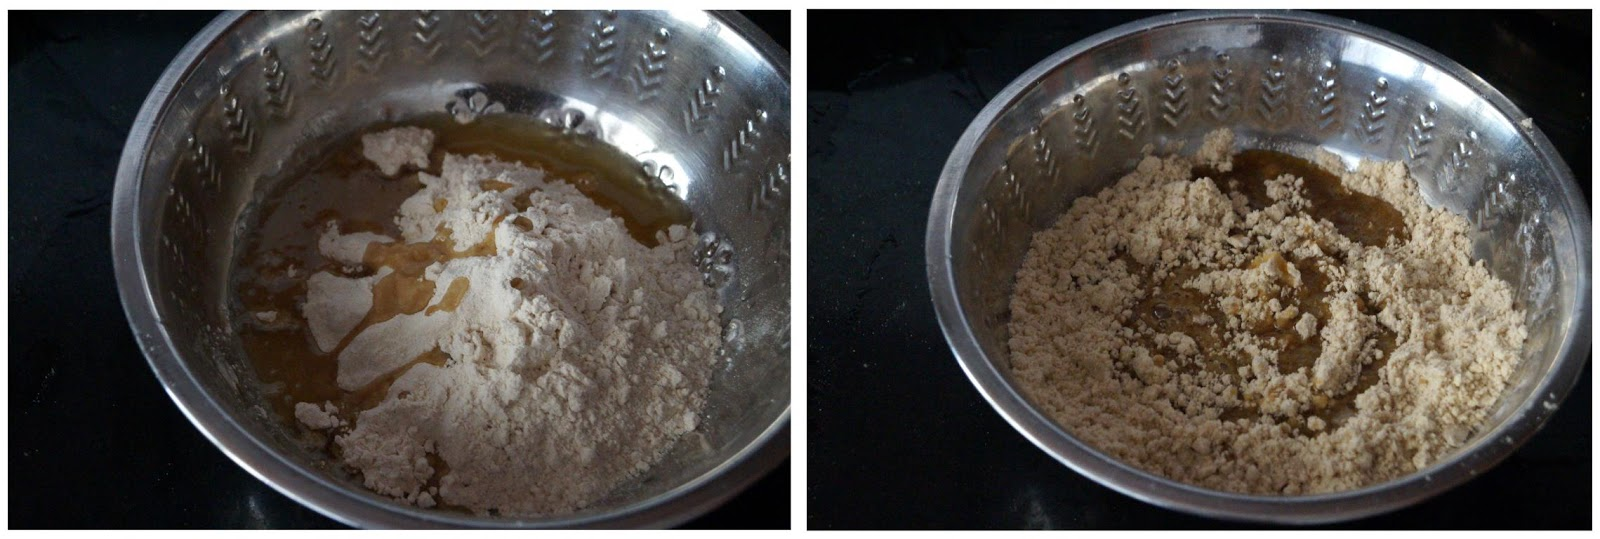 Making a wheat and jaggery dough to make gur para